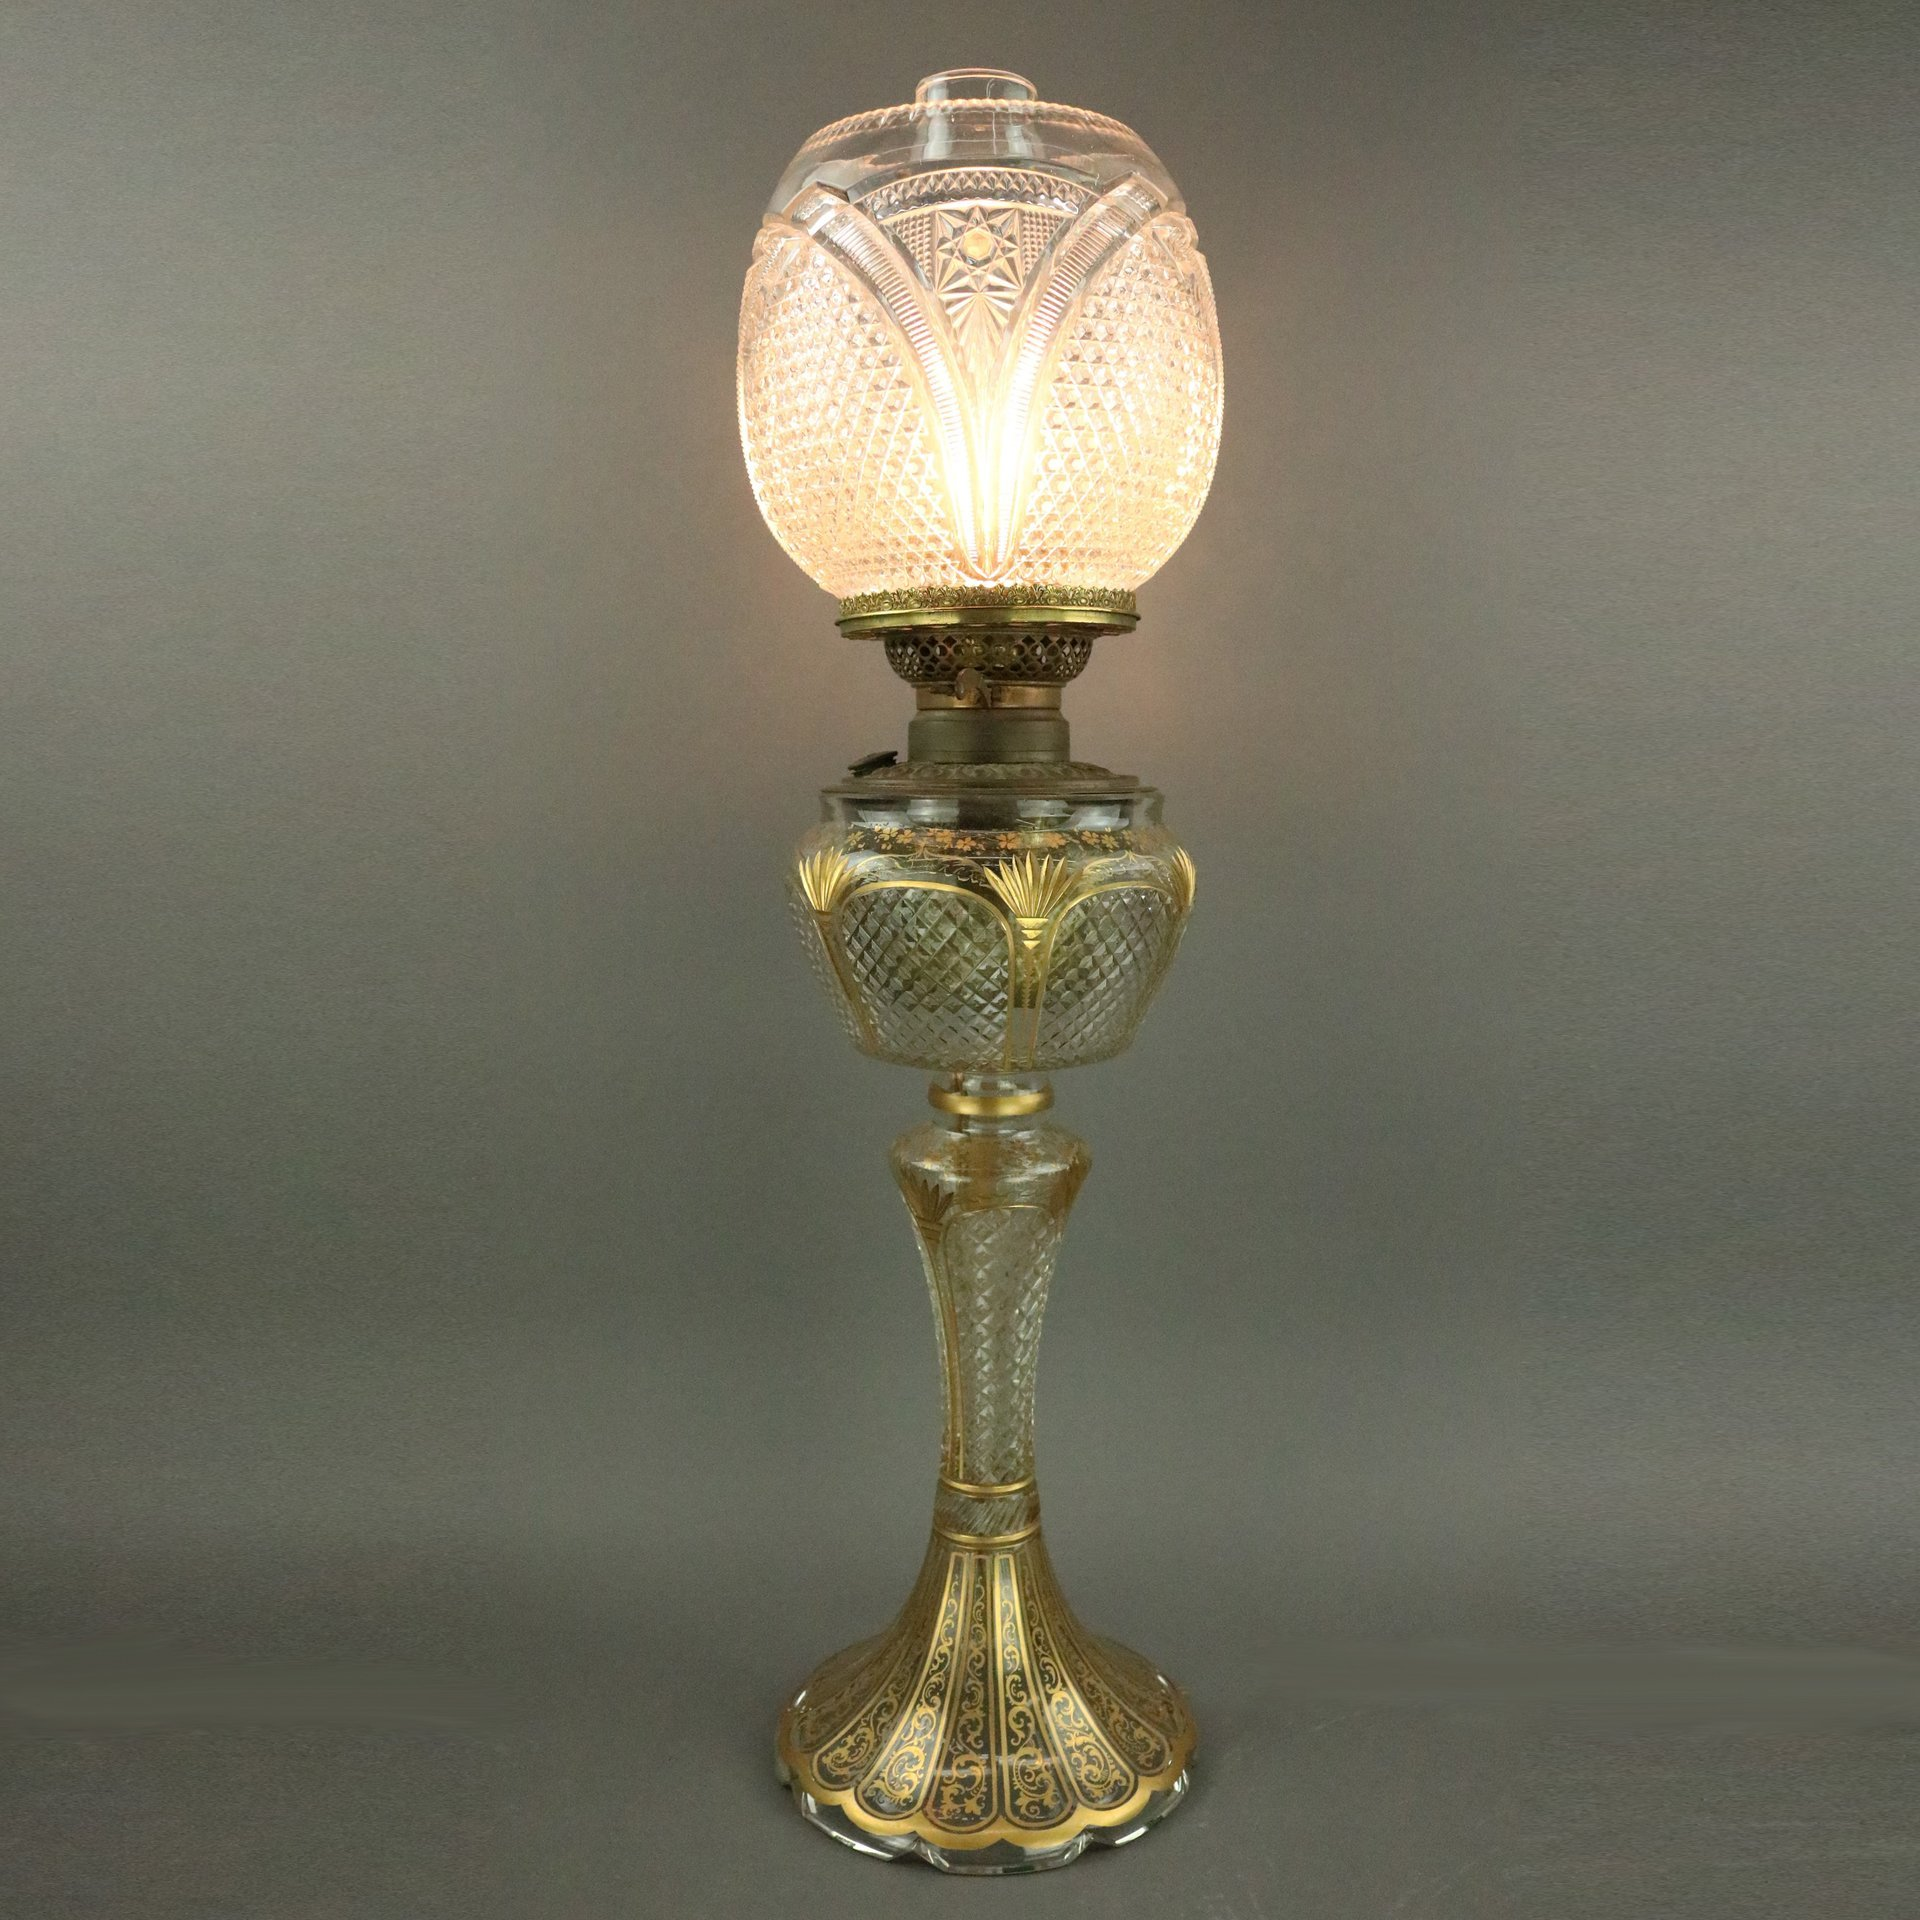 banquet lamp lighting oil lamp Bradley and Hubbard